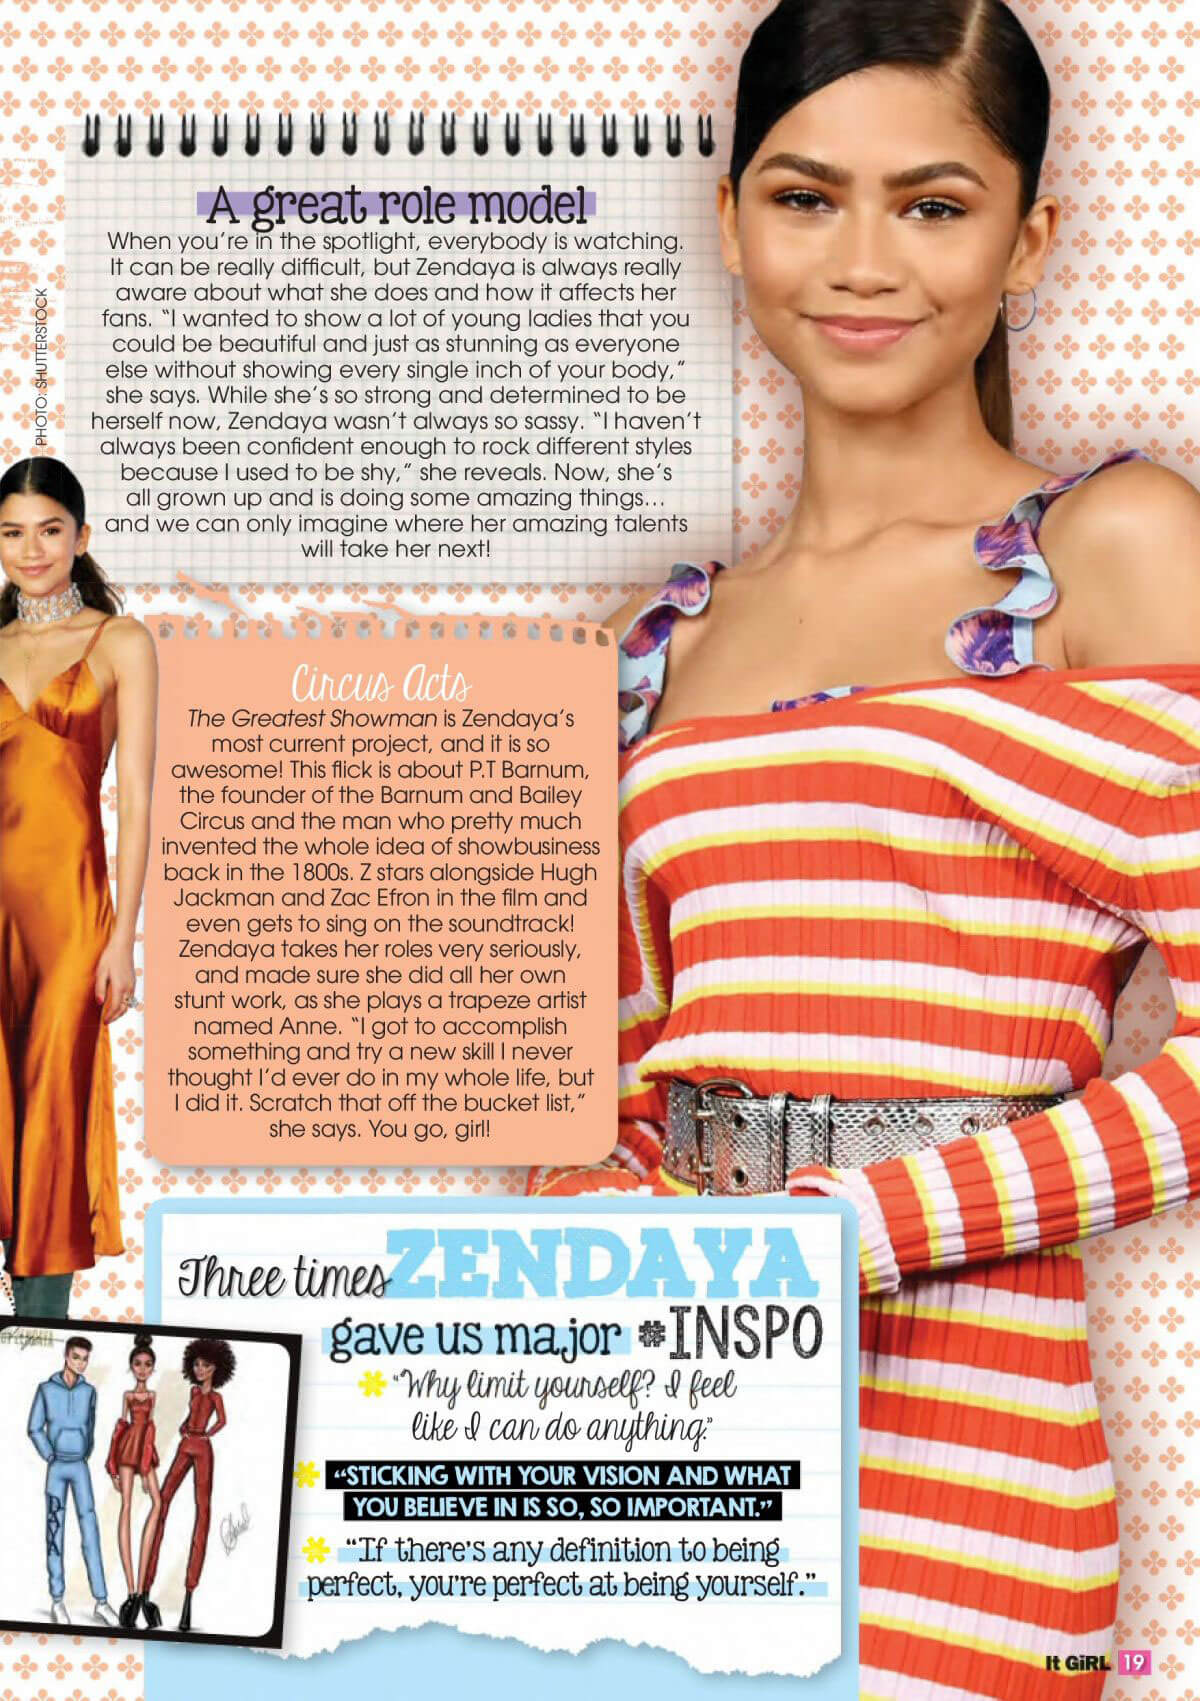 Zendaya Stills in It Girl Magazine, February 2018 Issue